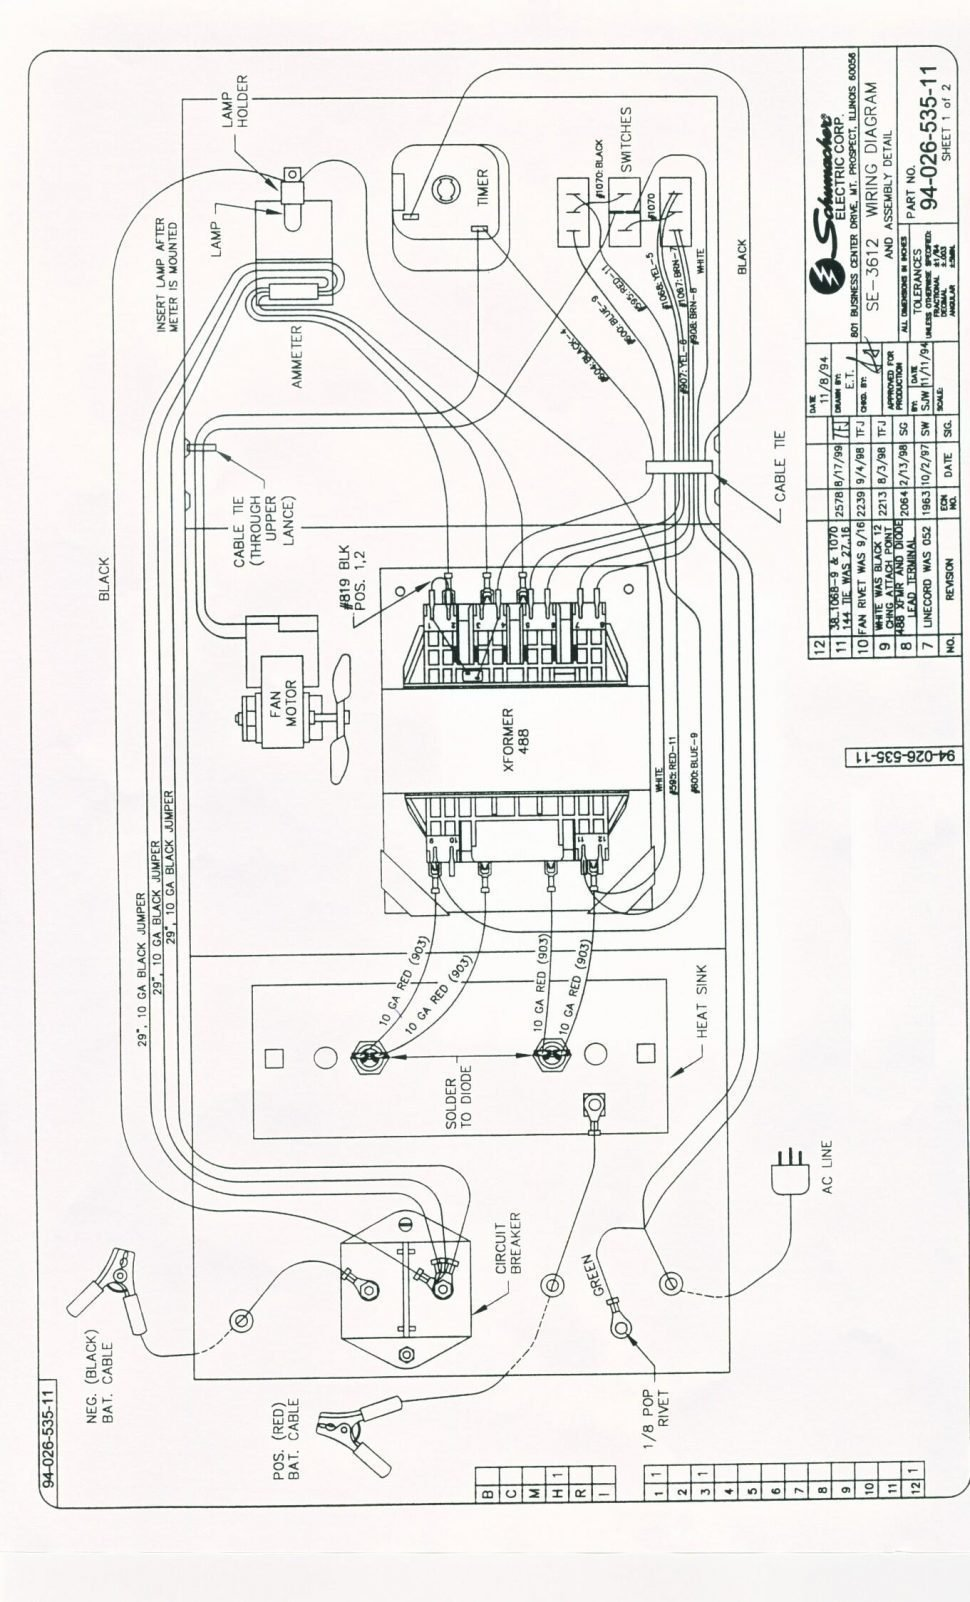 medium resolution of 970x1602 diagram amazing household electrical wiring diagram picture